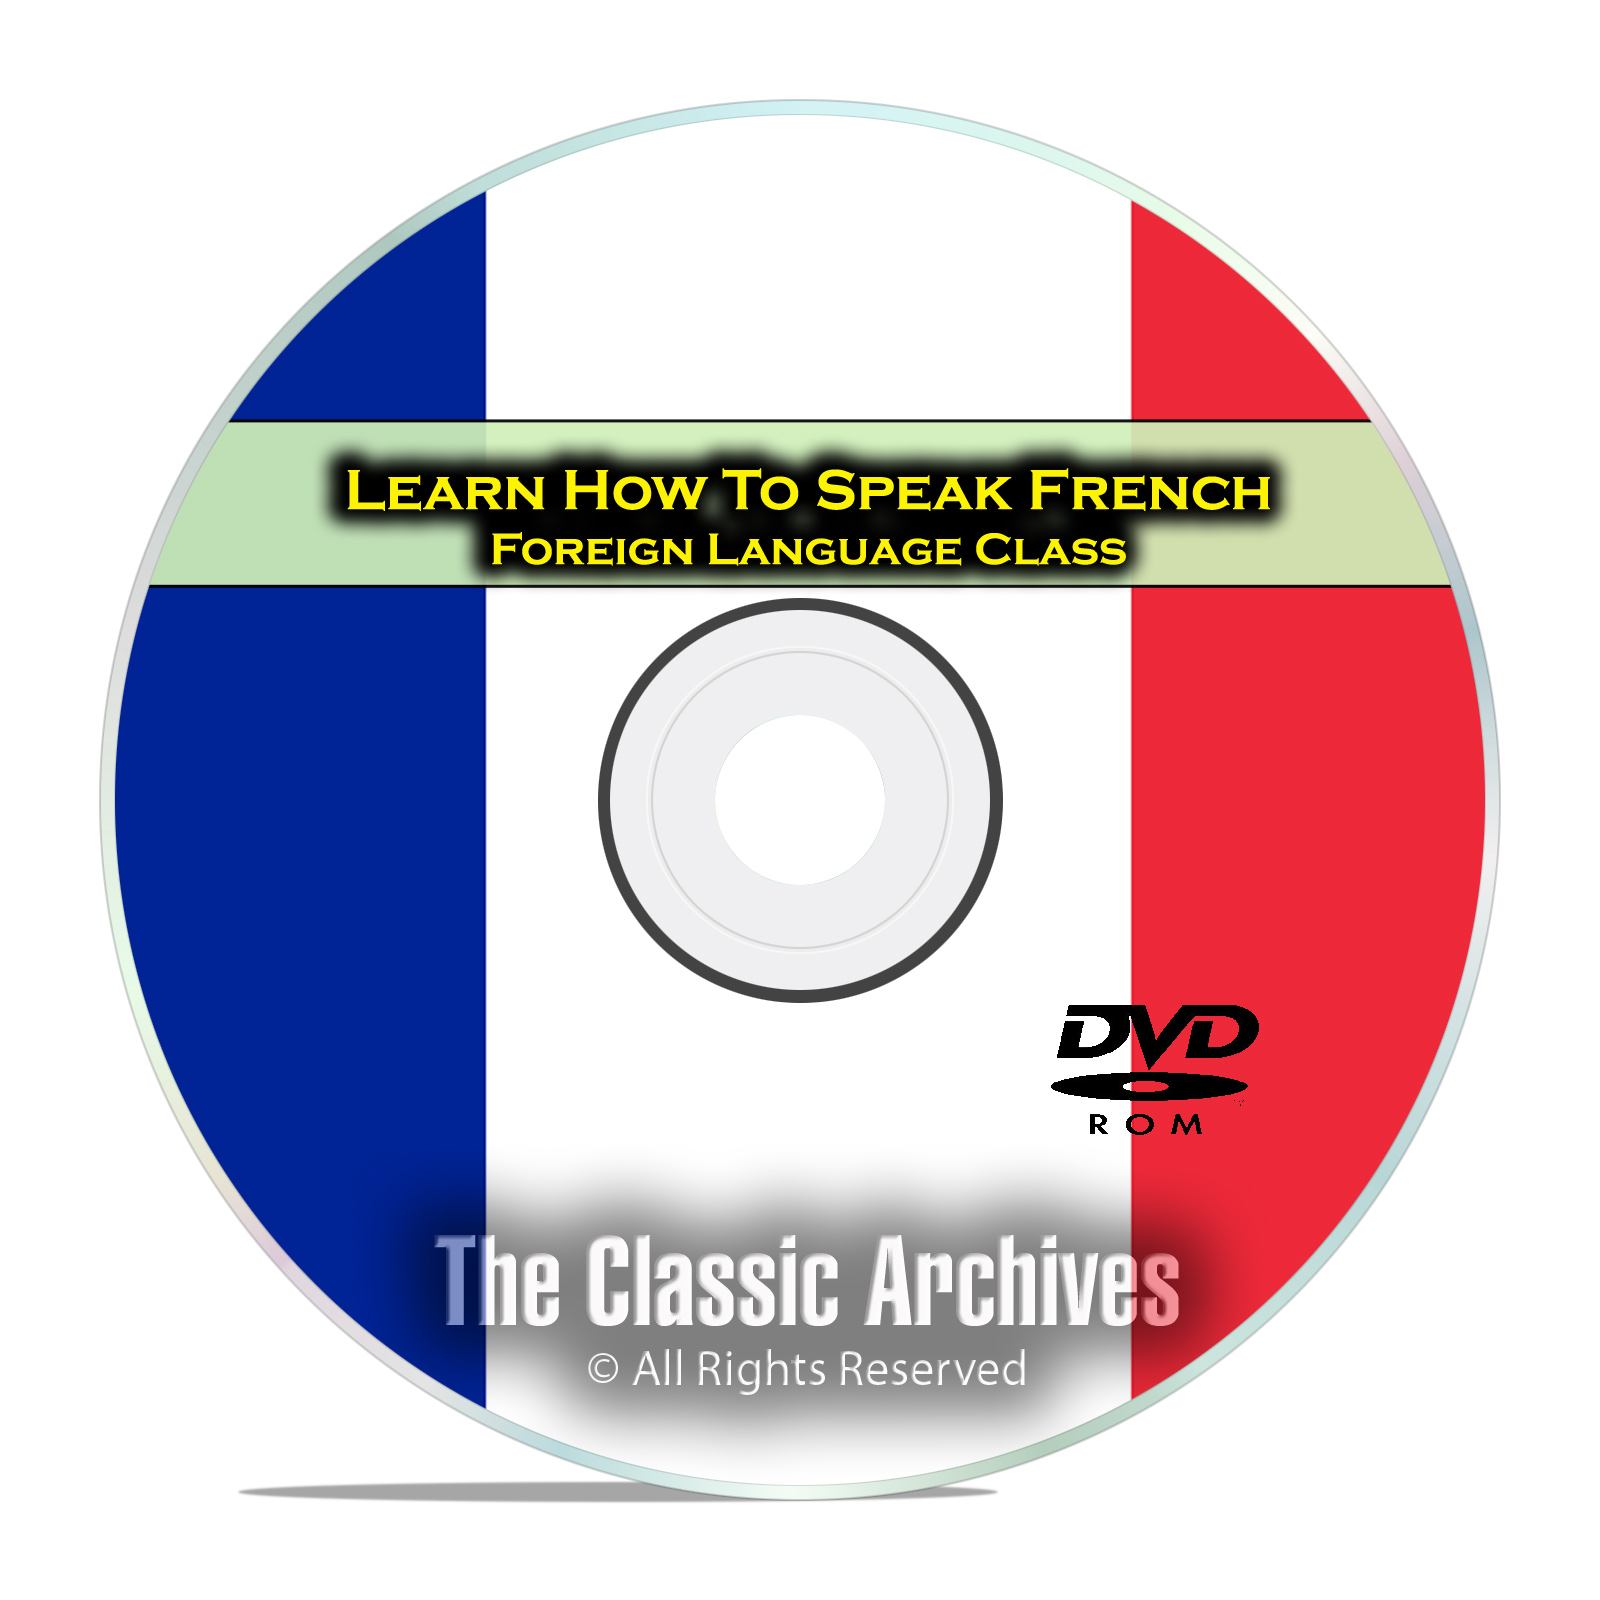 Learn How To Speak French, Fast Easy Foreign Language Training Course, DVD